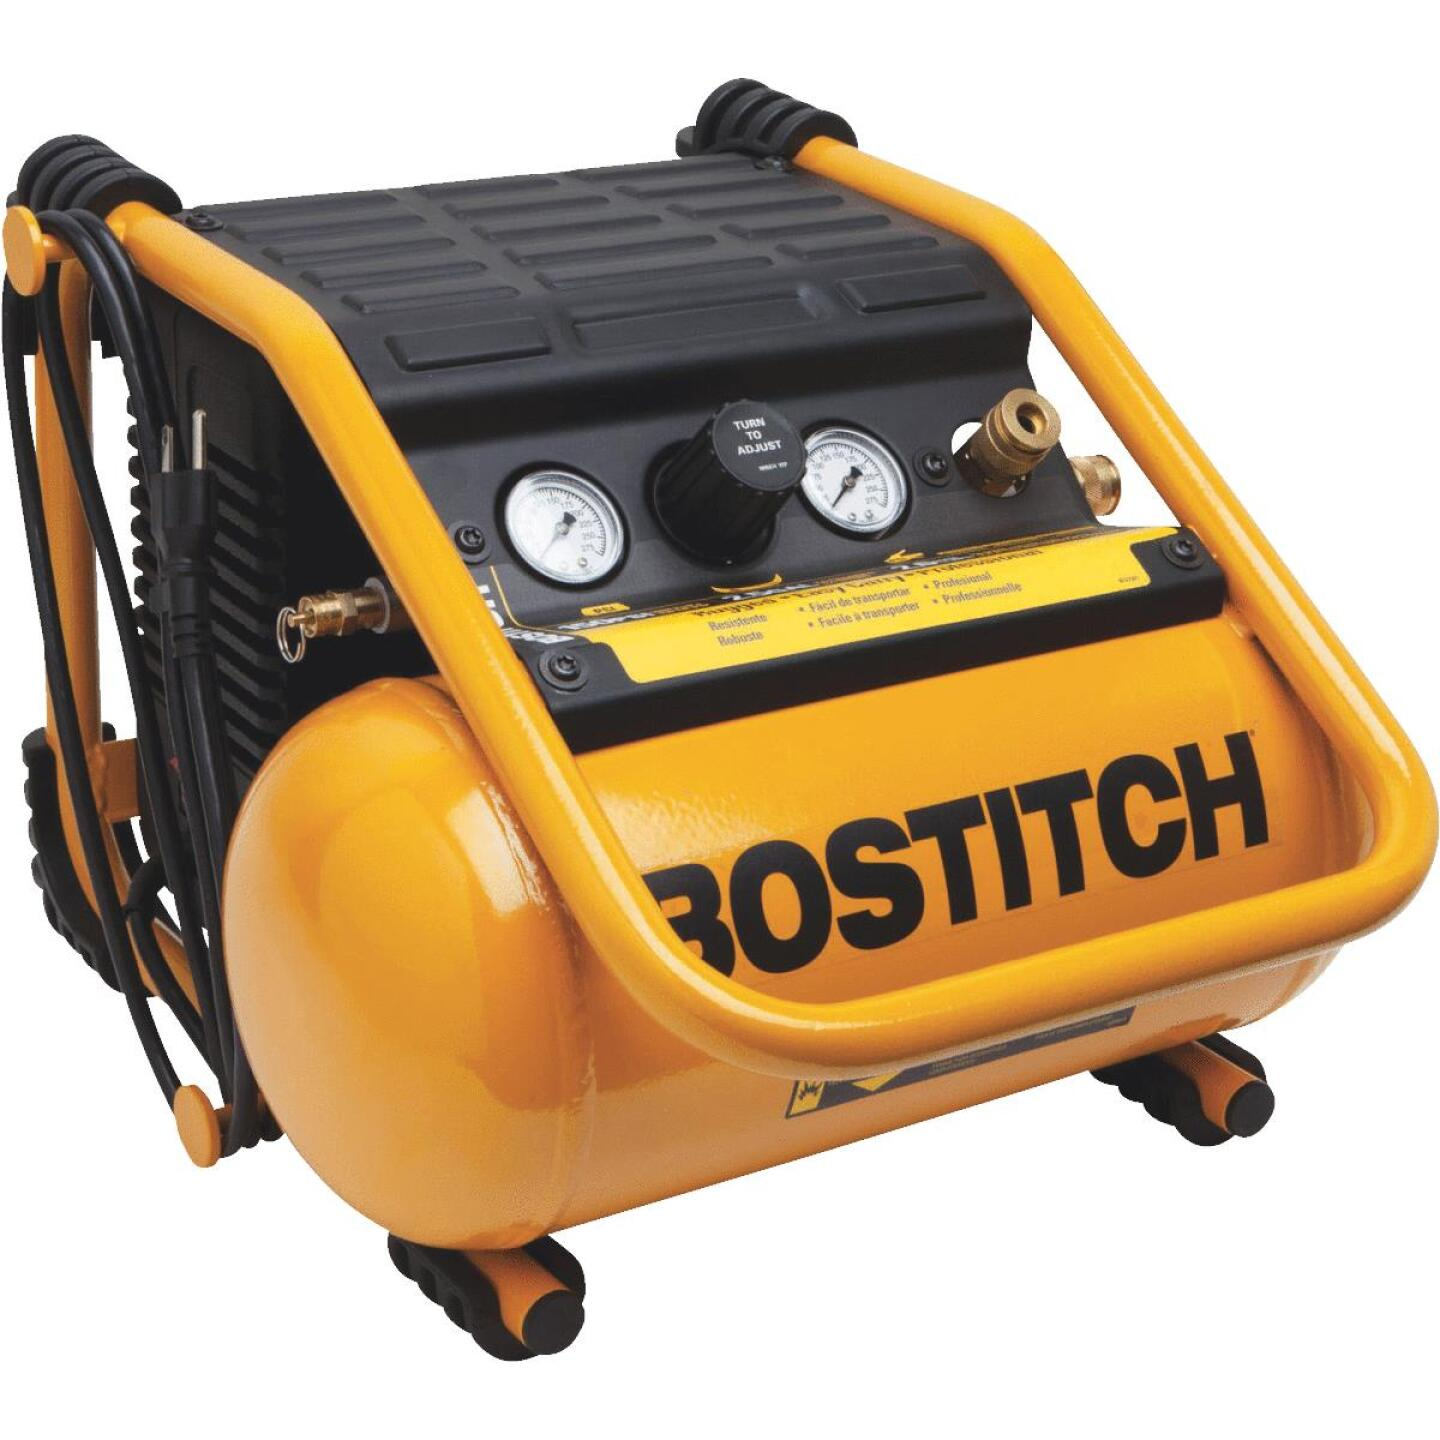 Bostitch 2.5 Gal. Portable 150 psi Suitcase Style Air Compressor Image 1